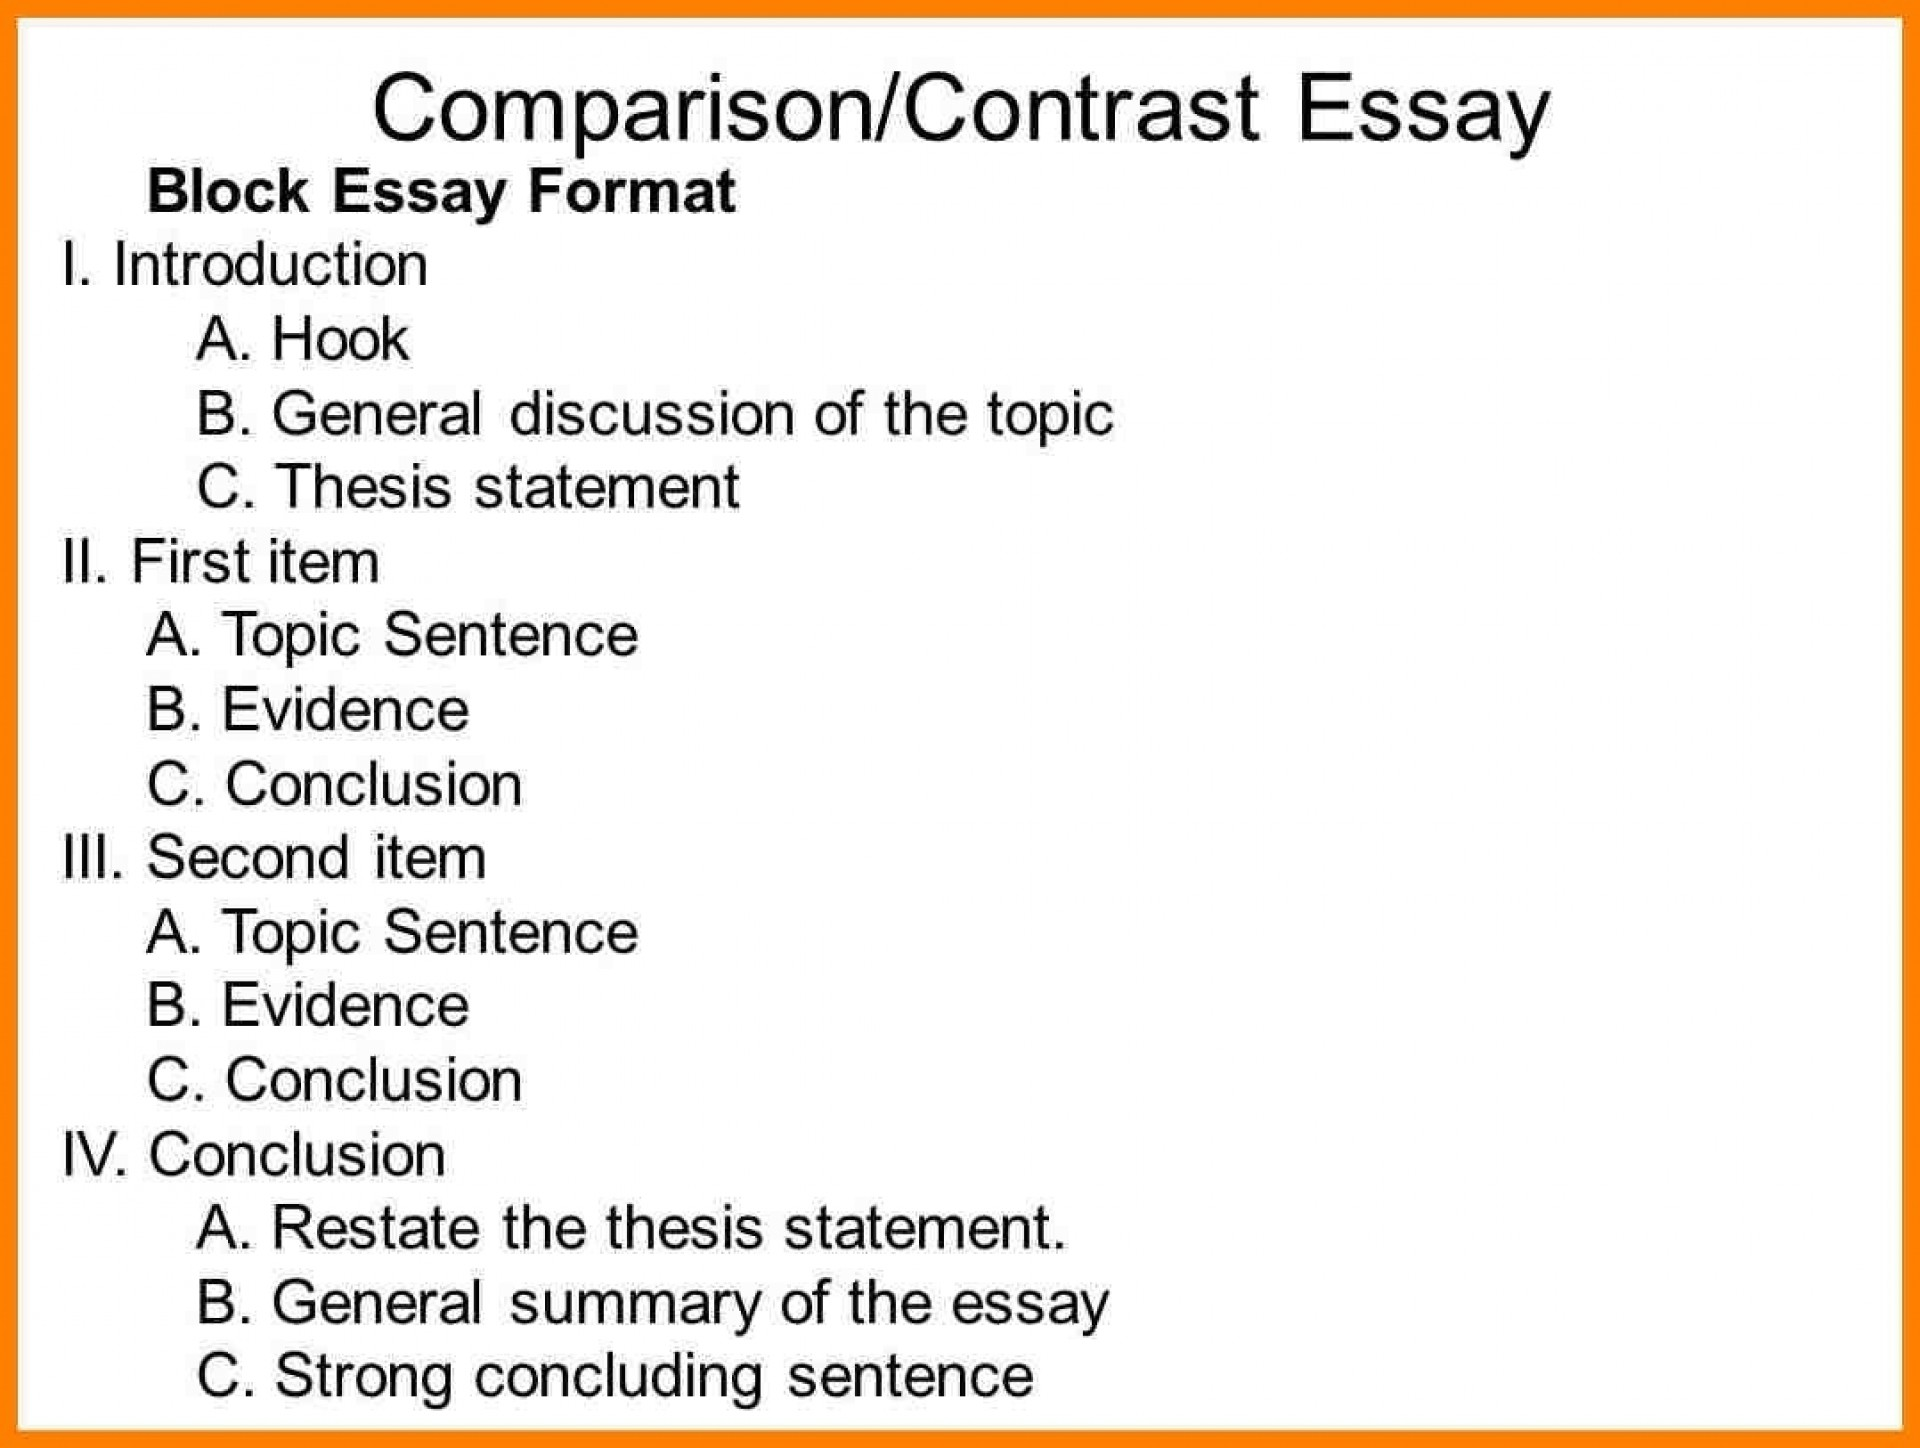 016 Compare Contrast Essay Outline For Slide Entire Visualize Bleemoo Innd Block Method Example How To Awesome A And Create An 1920